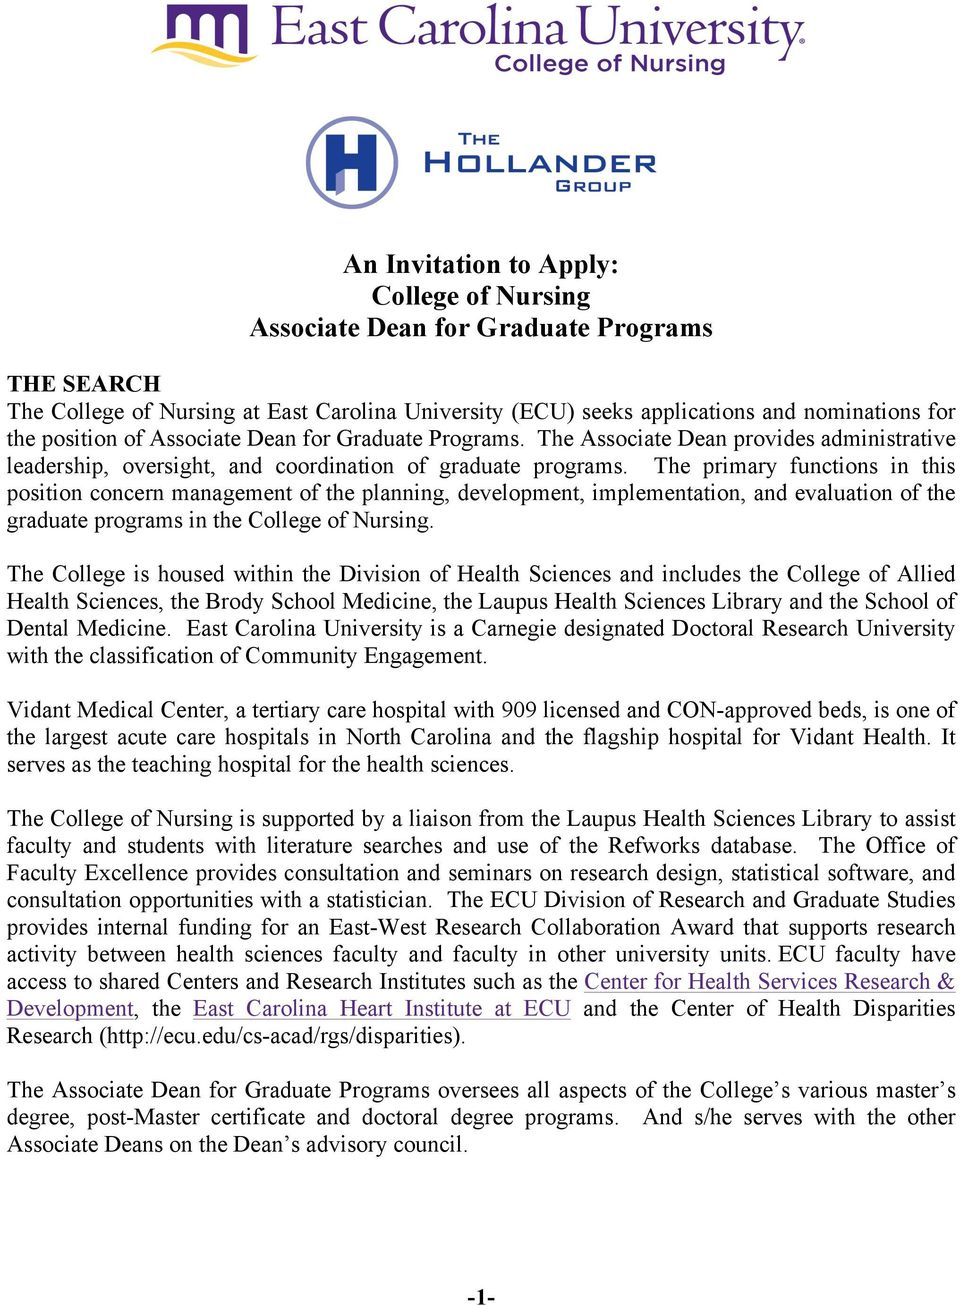 The primary functions in this position concern management of the planning, development, implementation, and evaluation of the graduate programs in the College of Nursing.